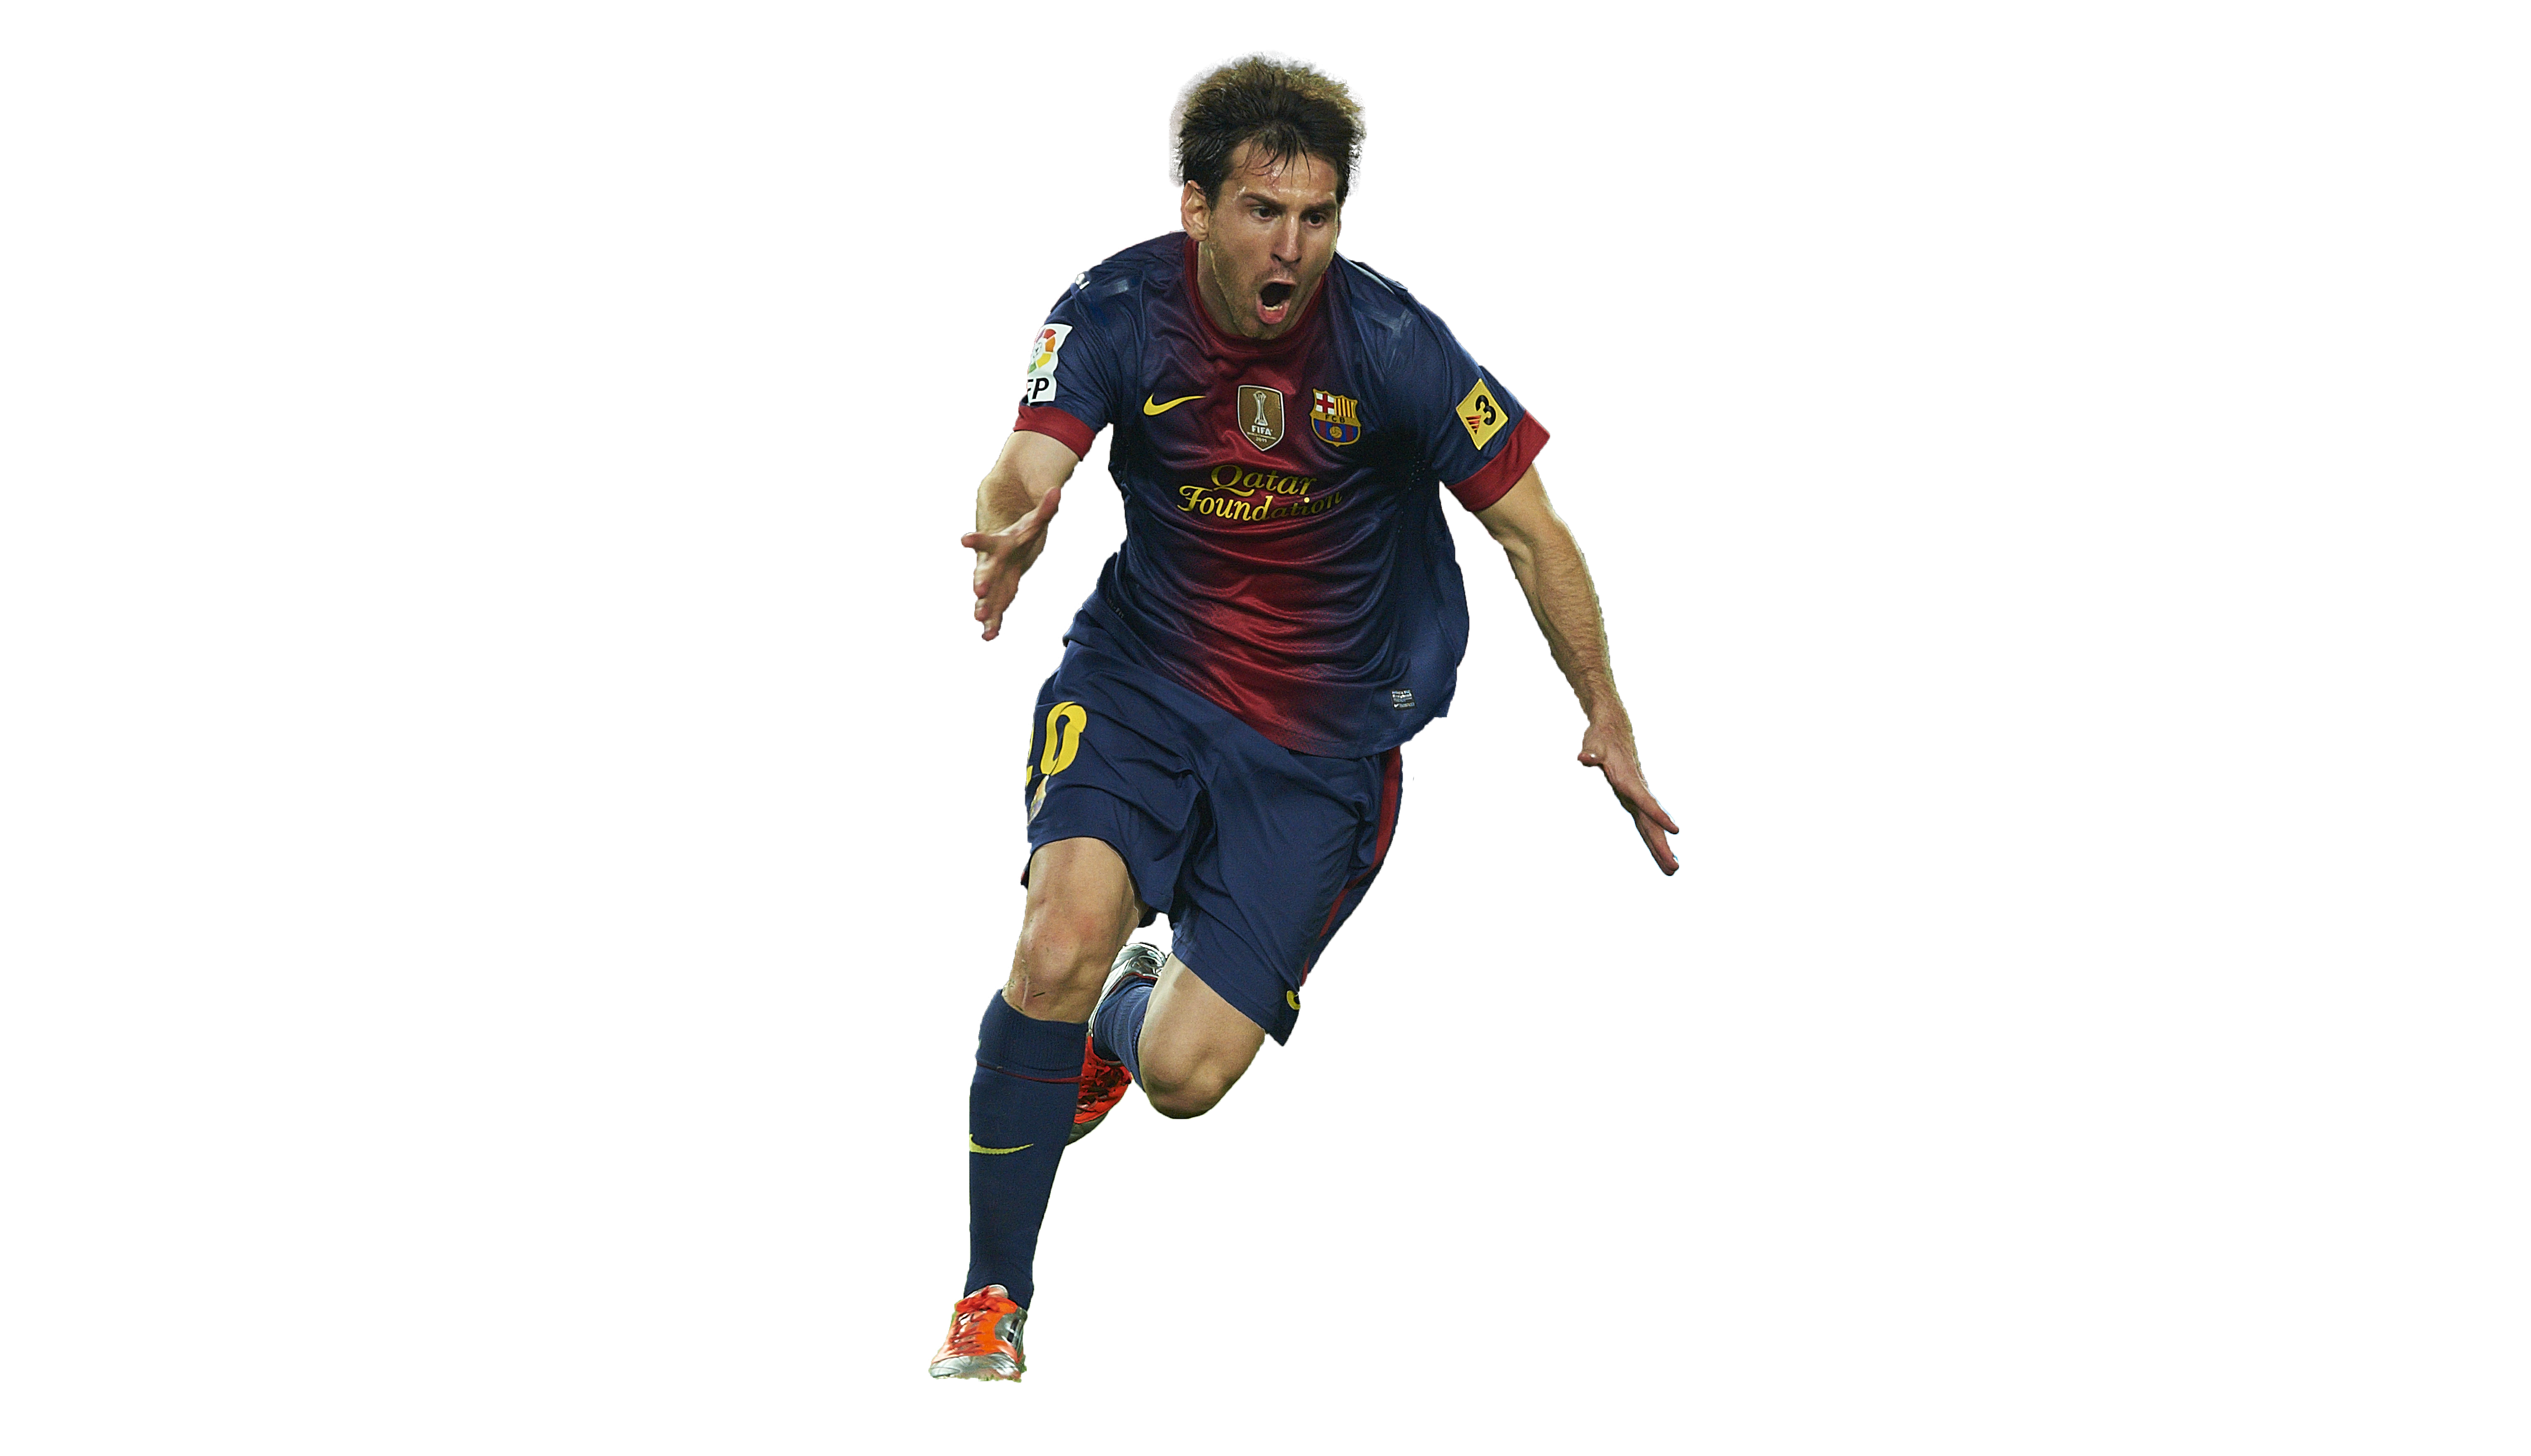 Lionel Messi Best Png